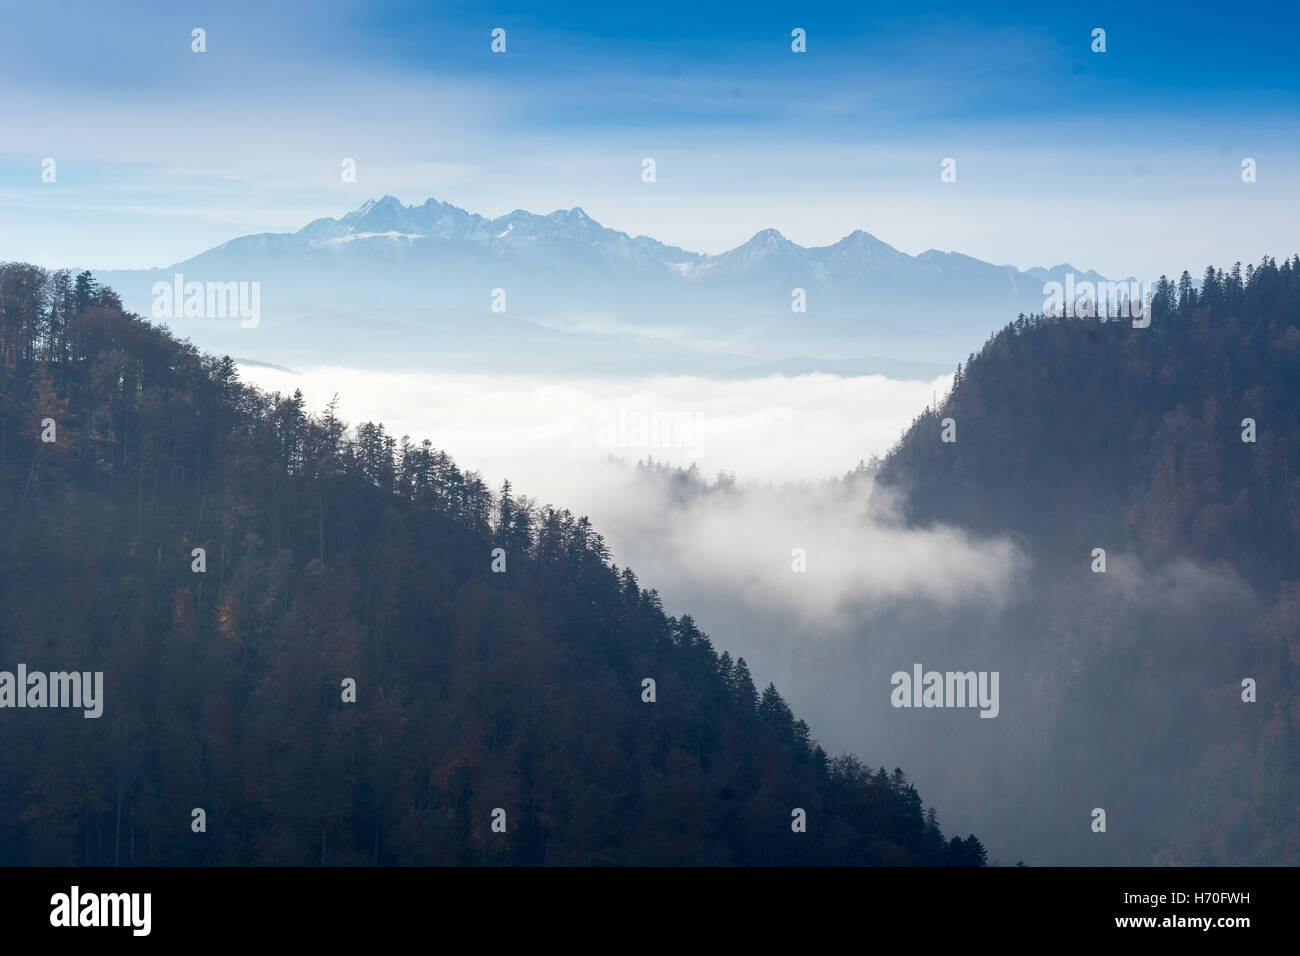 Aerial view of Pieniny and Tatra mountains with clouds and fog in the morning - Stock Image